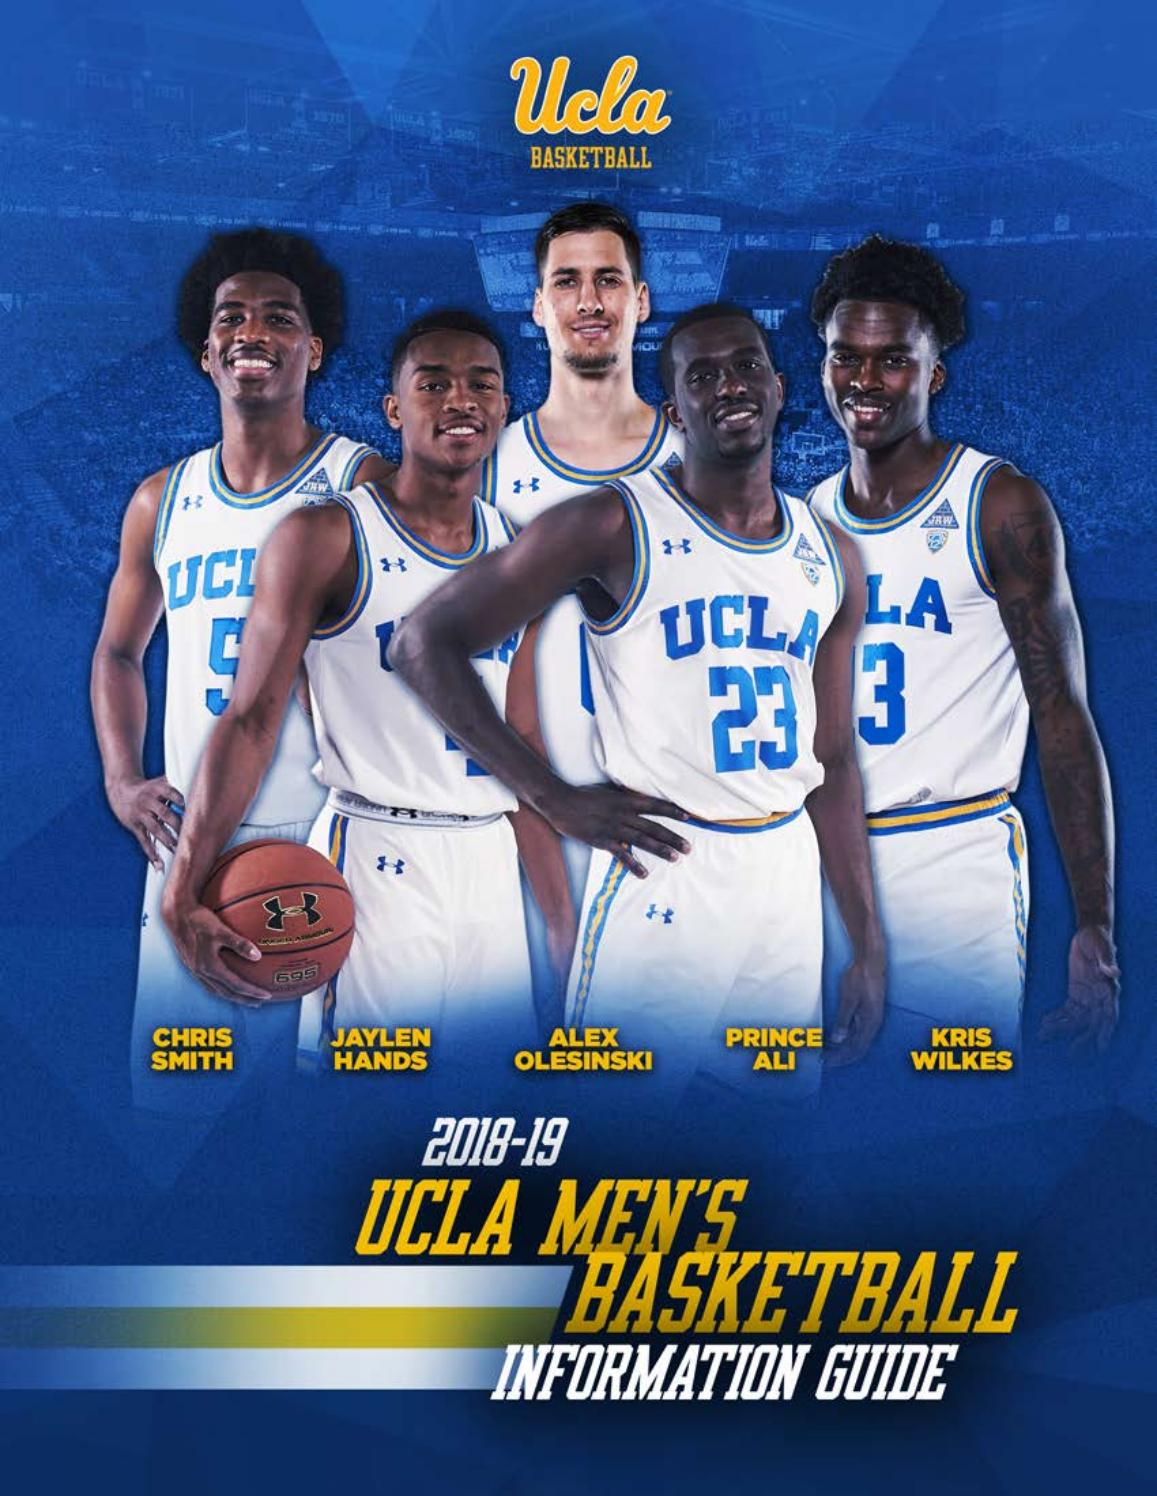 2018-19 UCLA Men s Basketball Information Guide by UCLA Athletics - issuu 42edde8d3